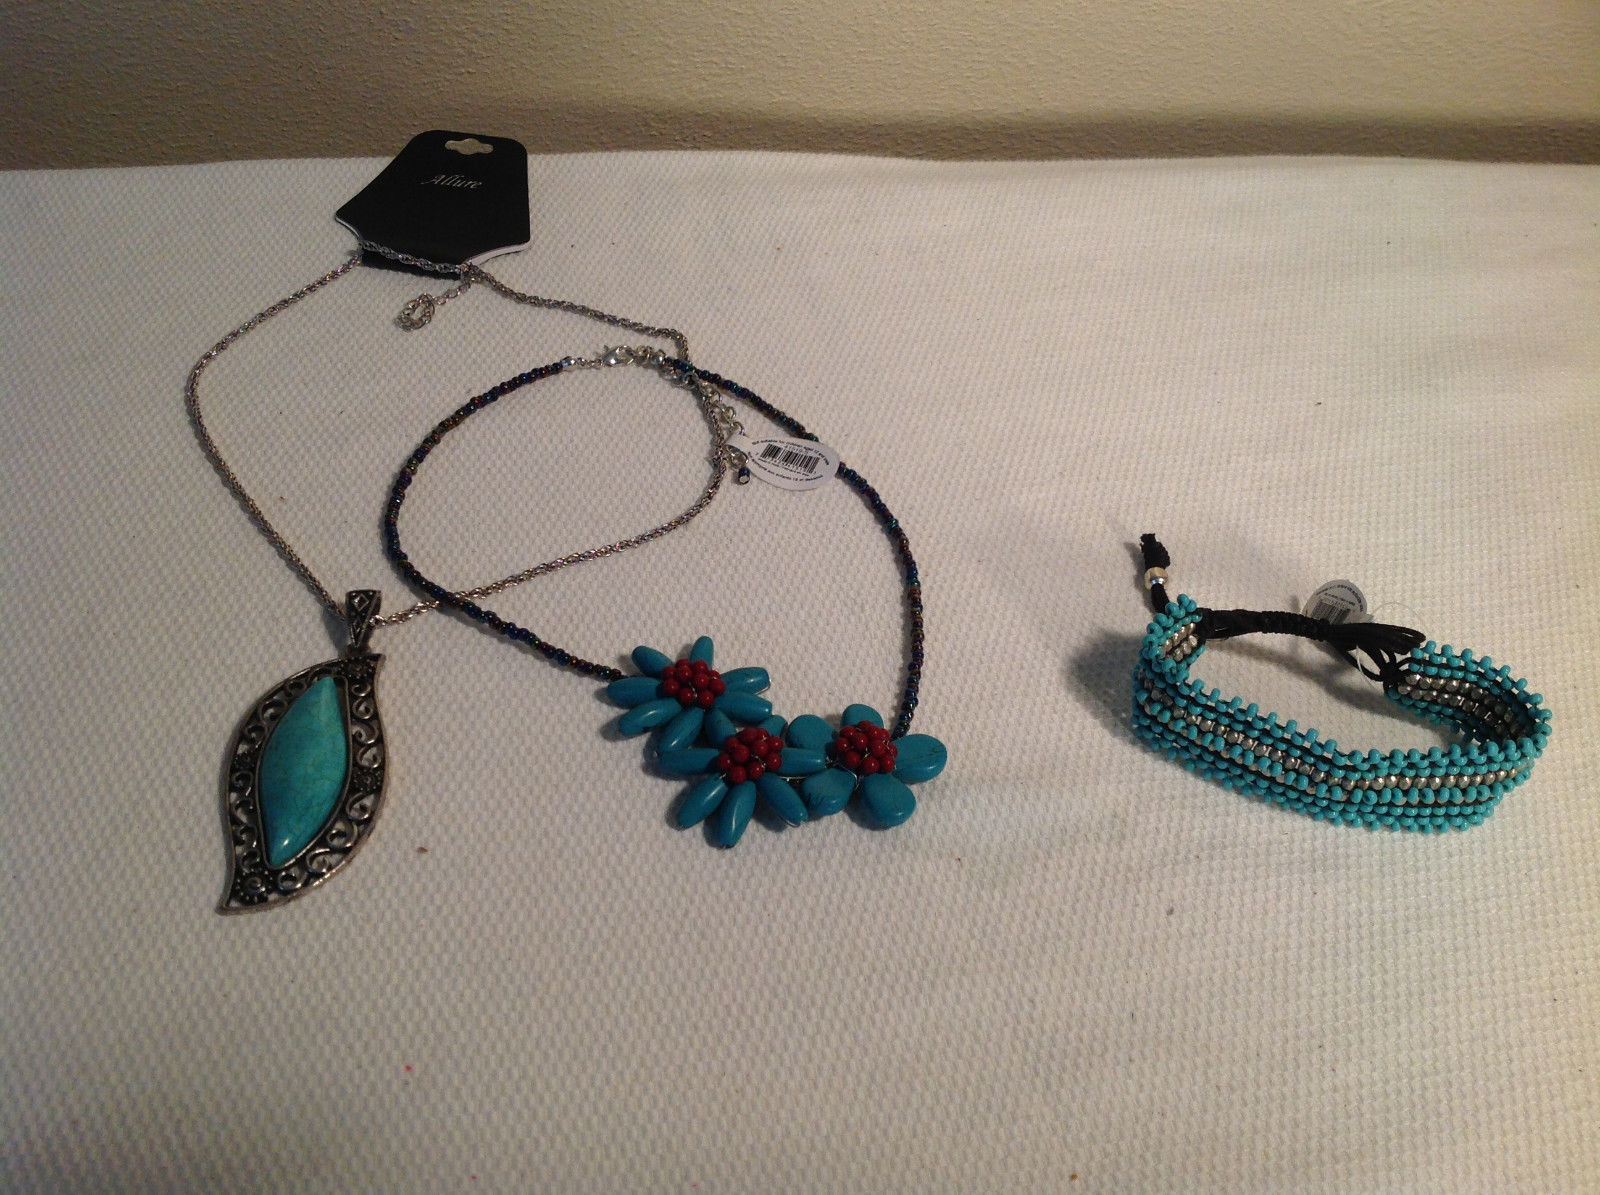 Set of 3 teal stone themed fashion jewellery 2 necklaces + bracelet